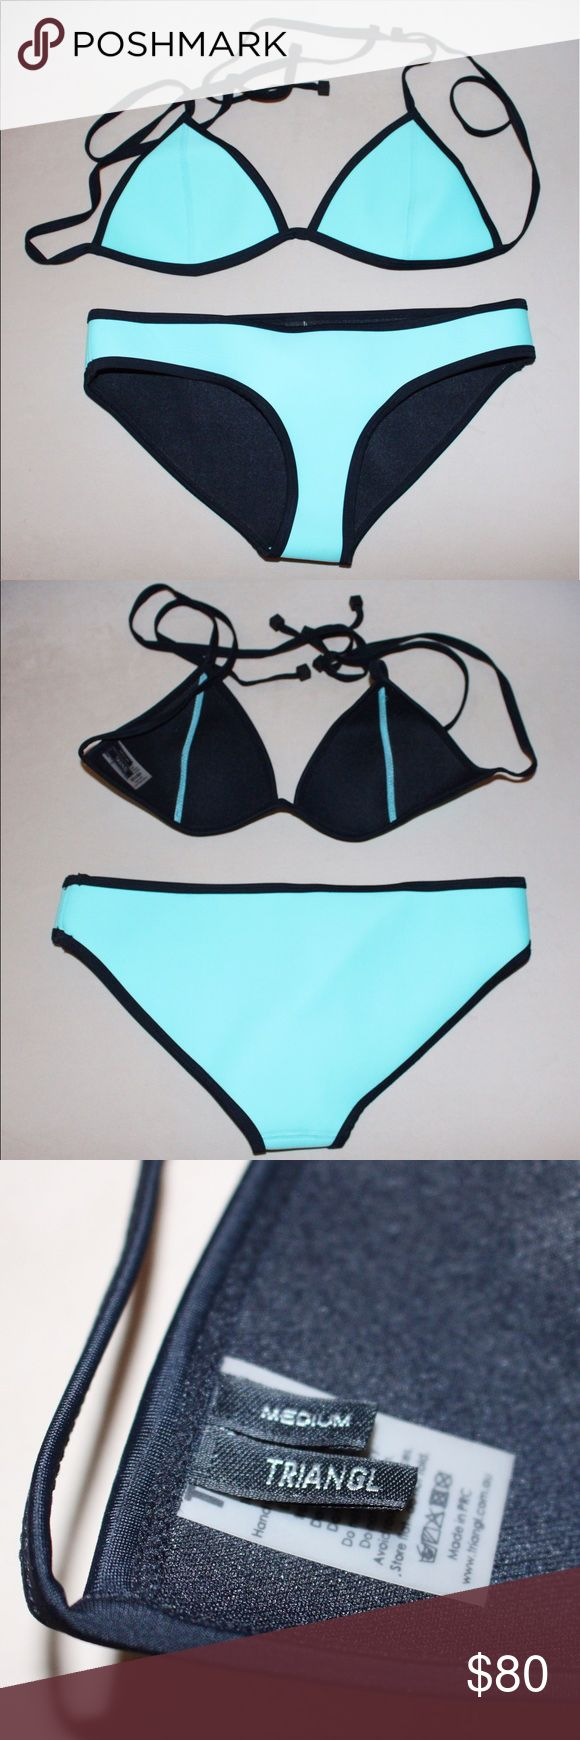 Triangl Mint Bikini This authentic Triangl mint bikini is the perfect addition to any summer beach day! The bathing suit does not have tags but has never been worn and is in mint condition. The top is a size Medium and the bottom is a size Small. triangl swimwear Swim Bikinis